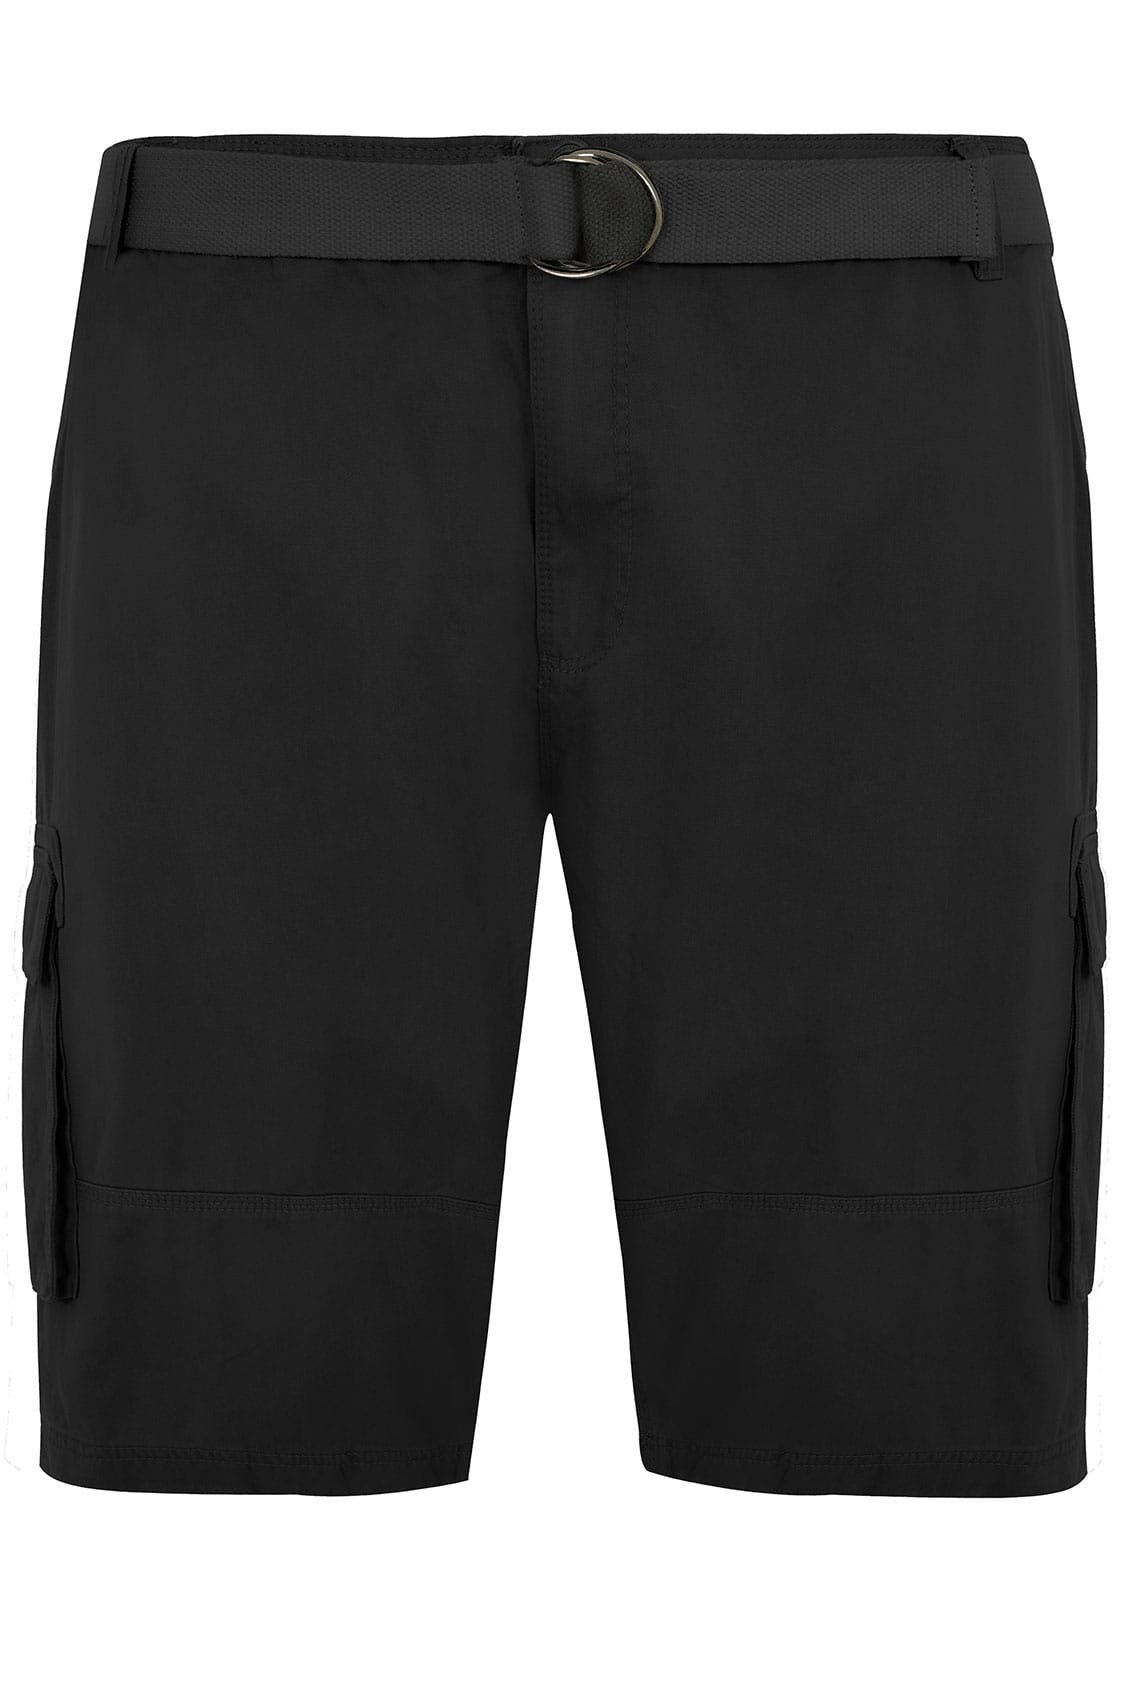 BadRhino Black Cargo Shorts With Canvas Belt